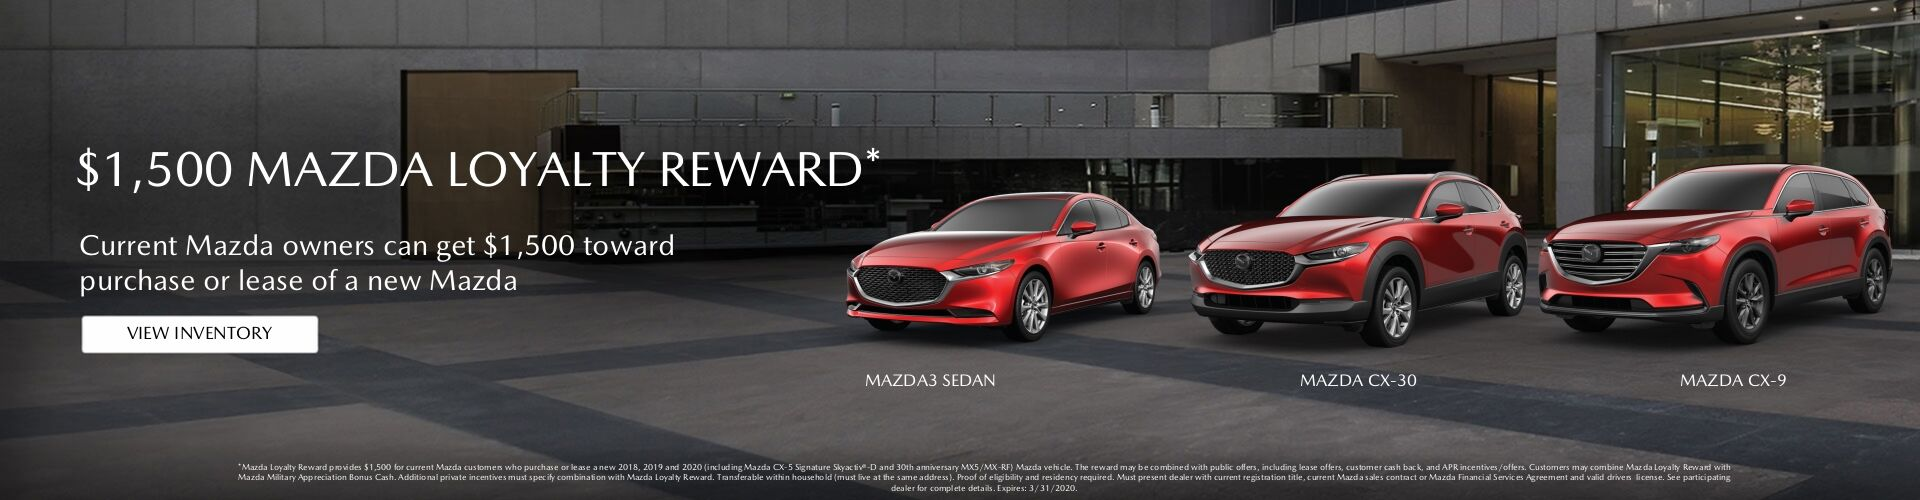 Mazda Loyalty Reward